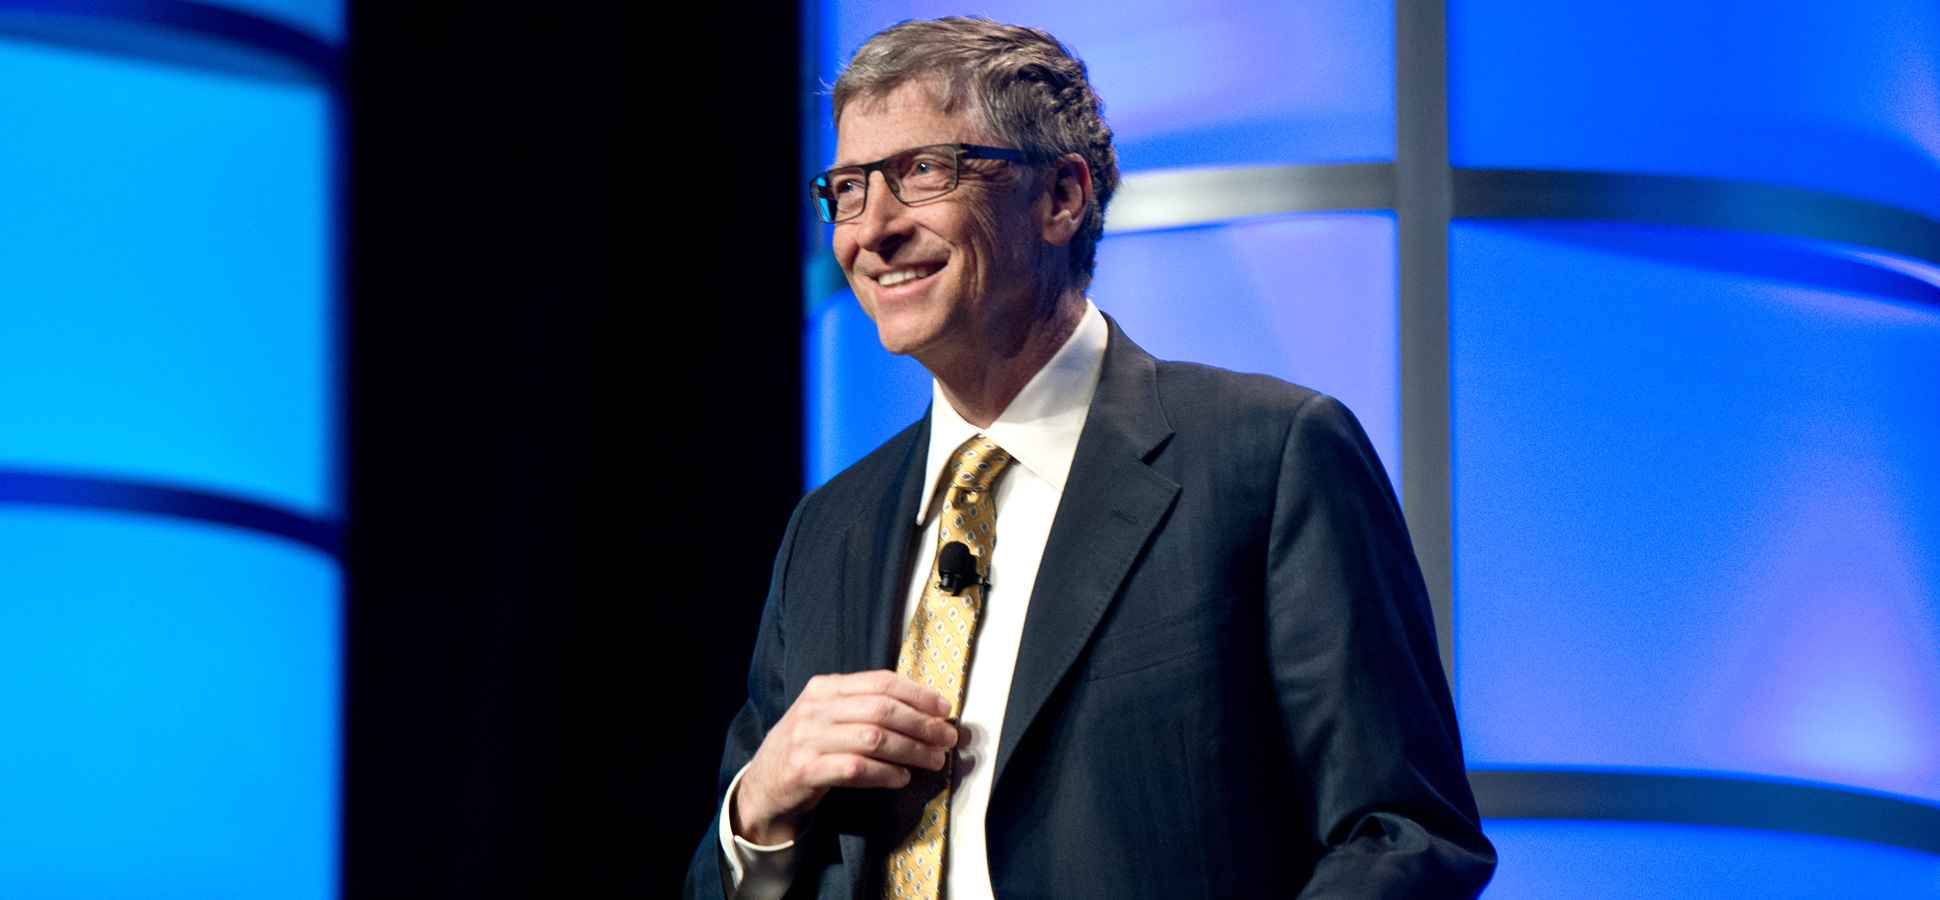 Bill Gates on the Future of Employment (It's Not Pretty)